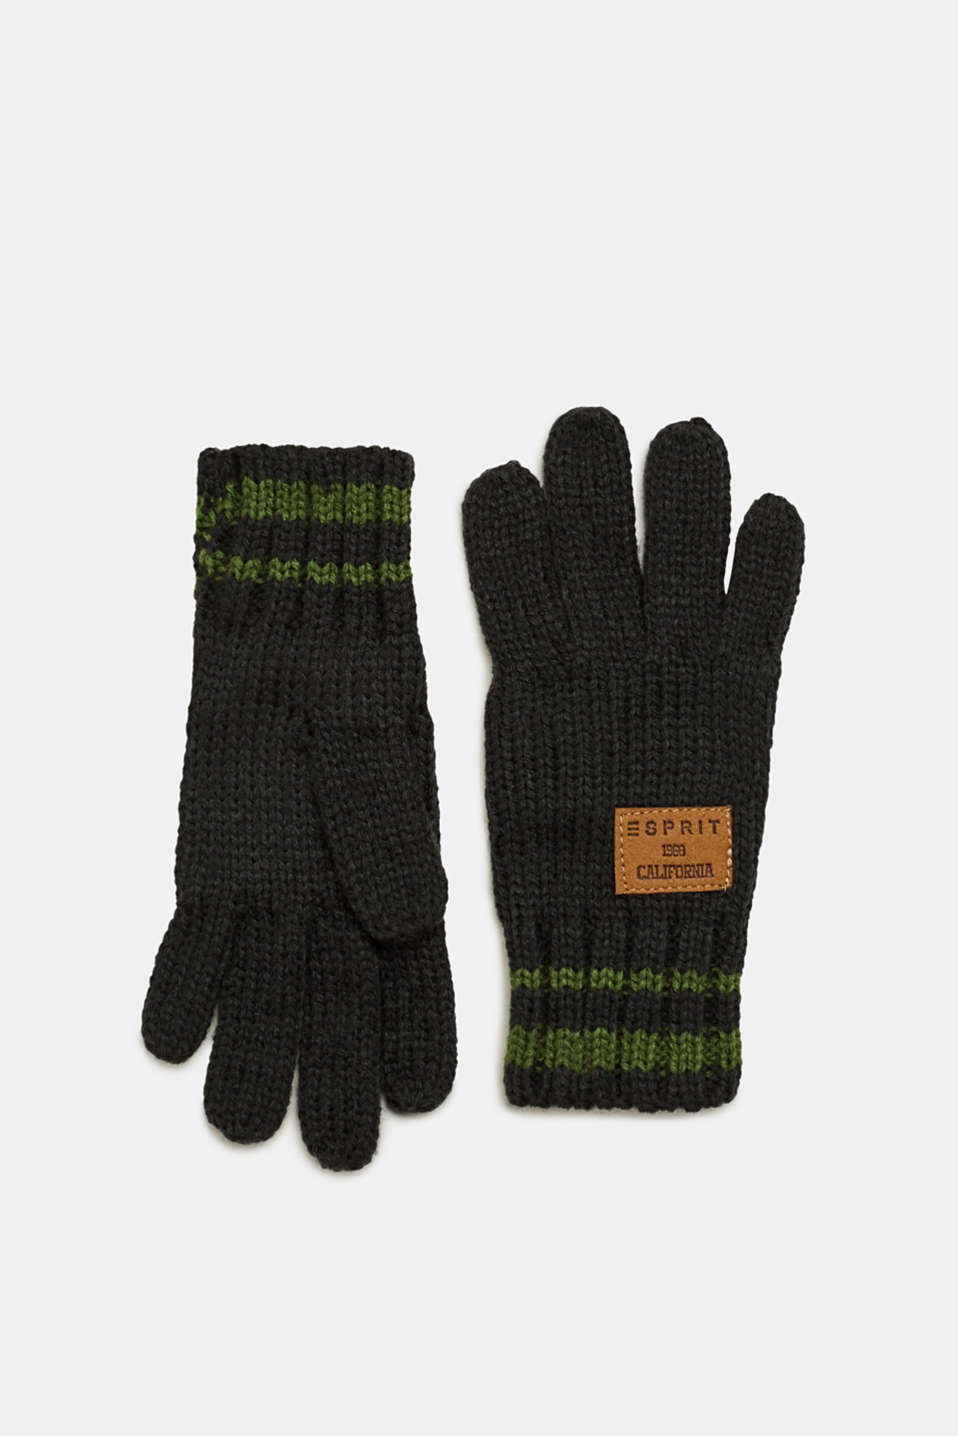 Esprit - Gloves knit in soft yarn